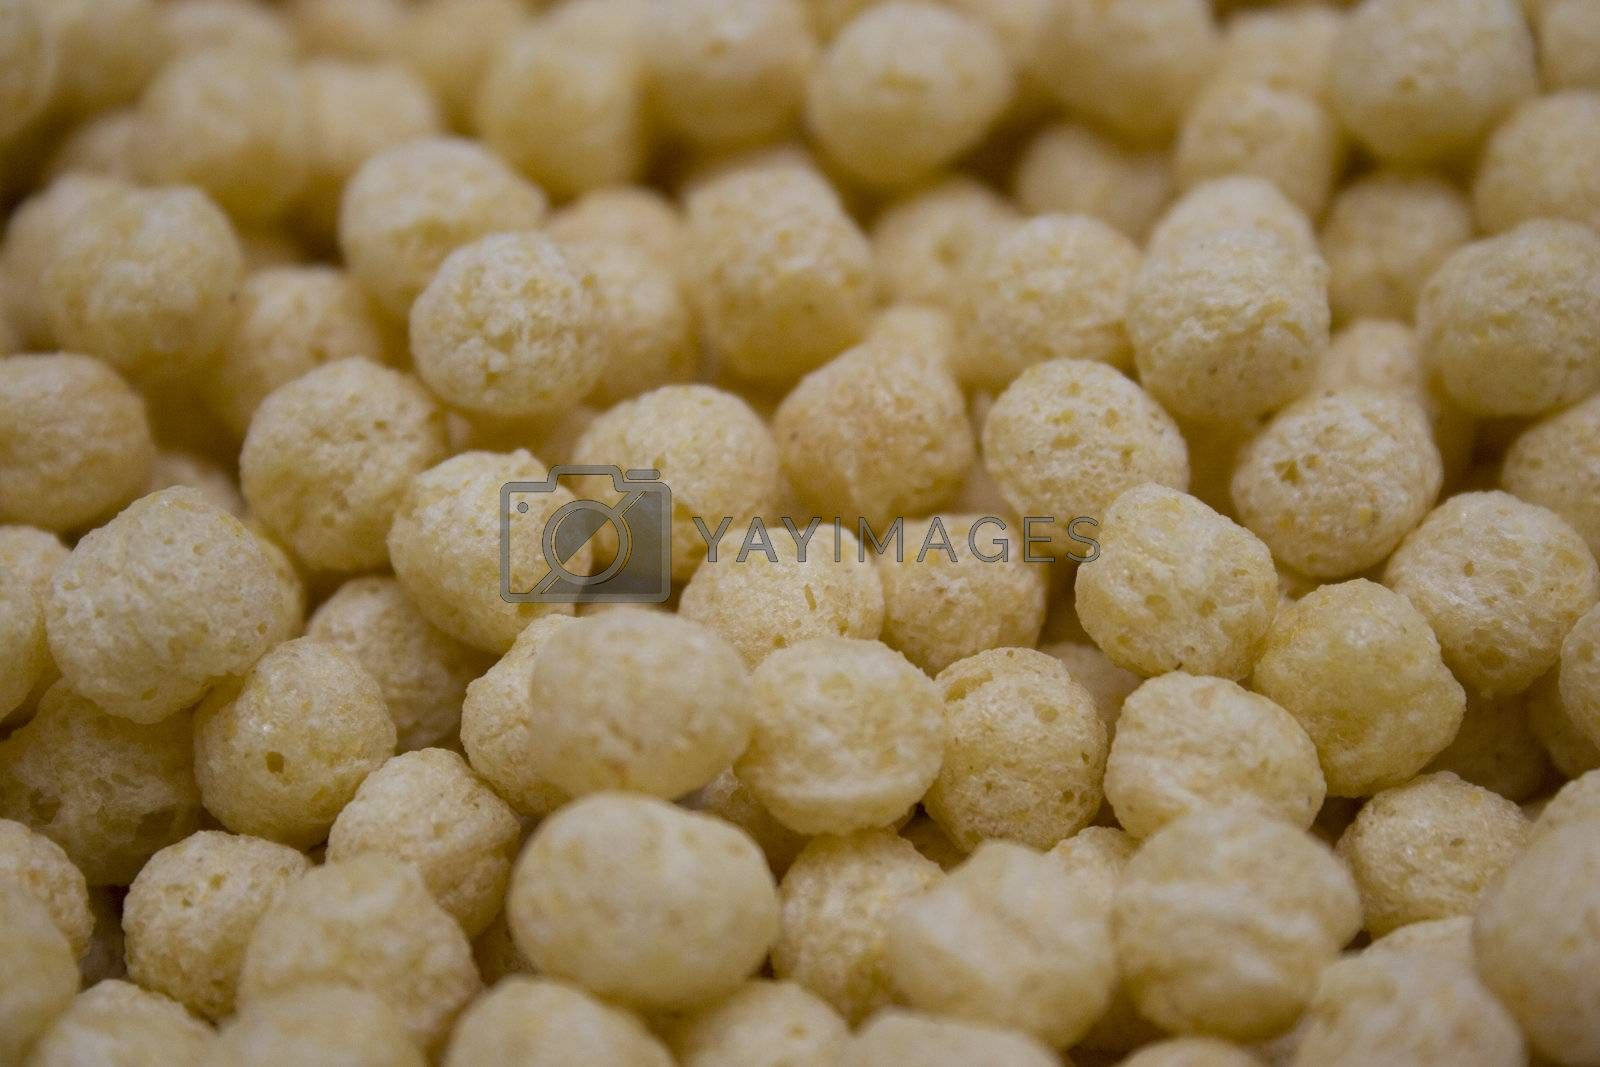 Puffed Grain Cereal by jclardy